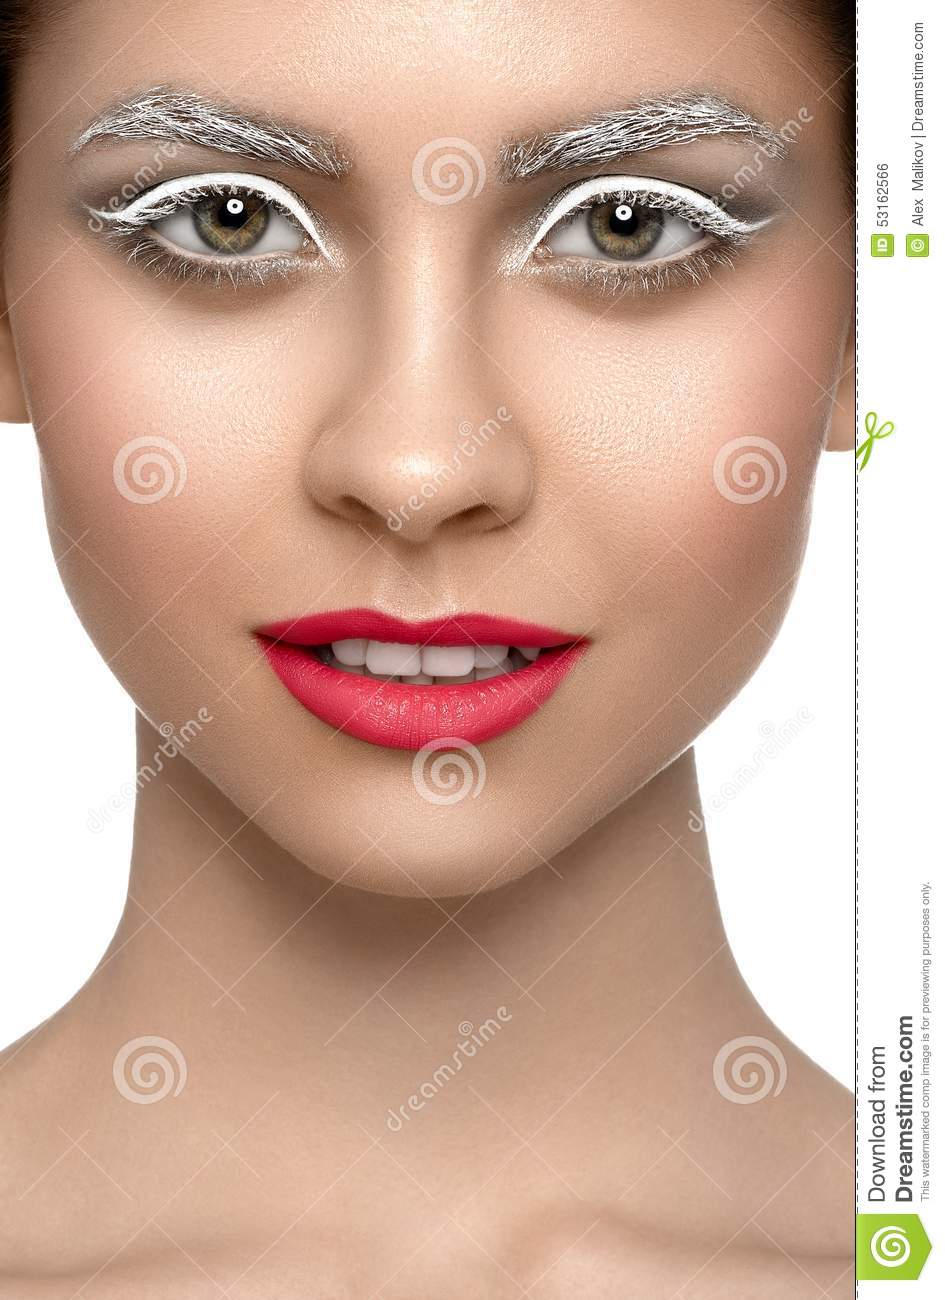 Makeup And Beauty Stock Photo Image Of Care Bright 53162566